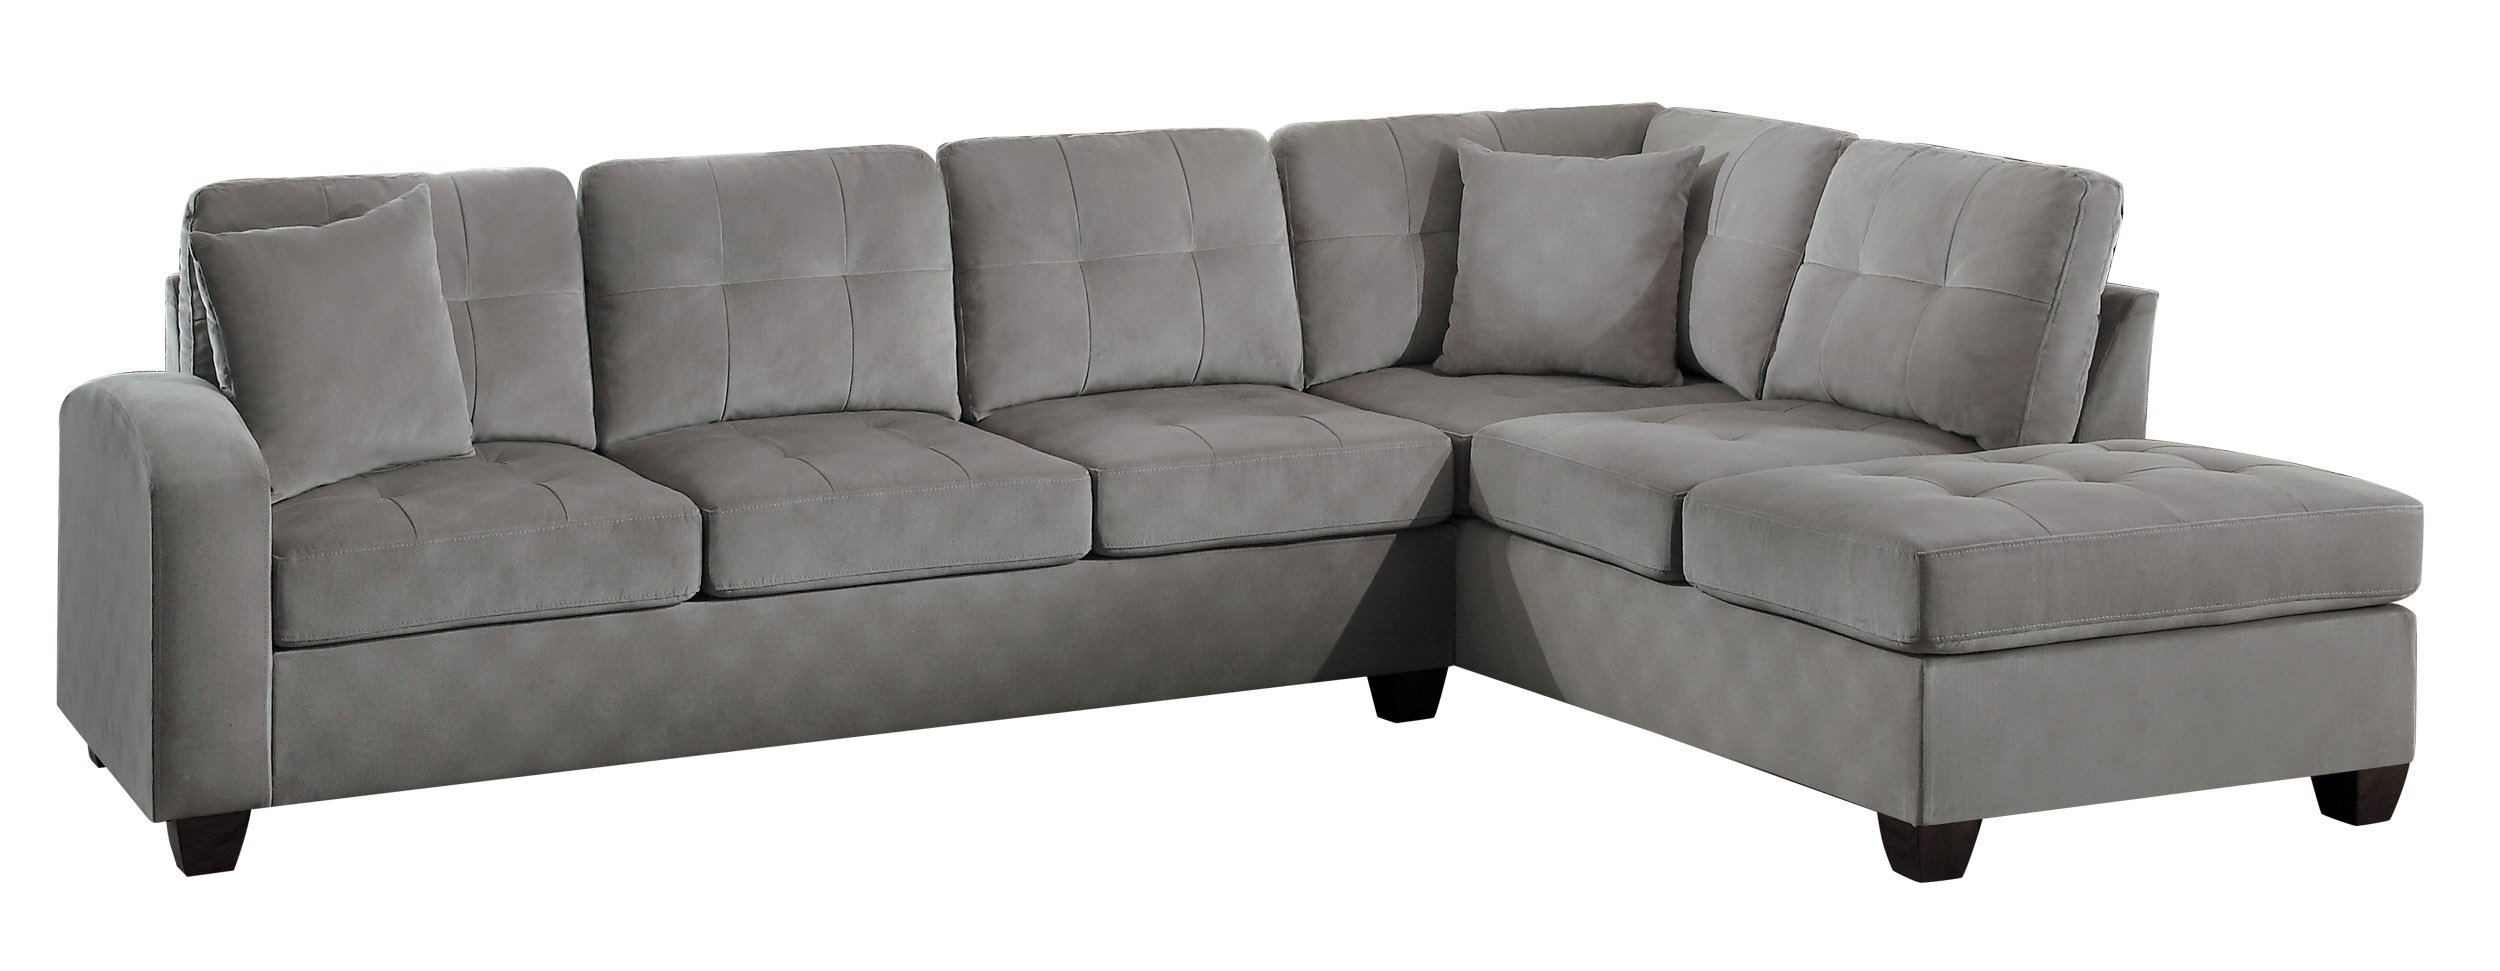 Homelegance Sectional Sofa Polyester With Reversible Chaise and Two Toss Pillows, Taupe